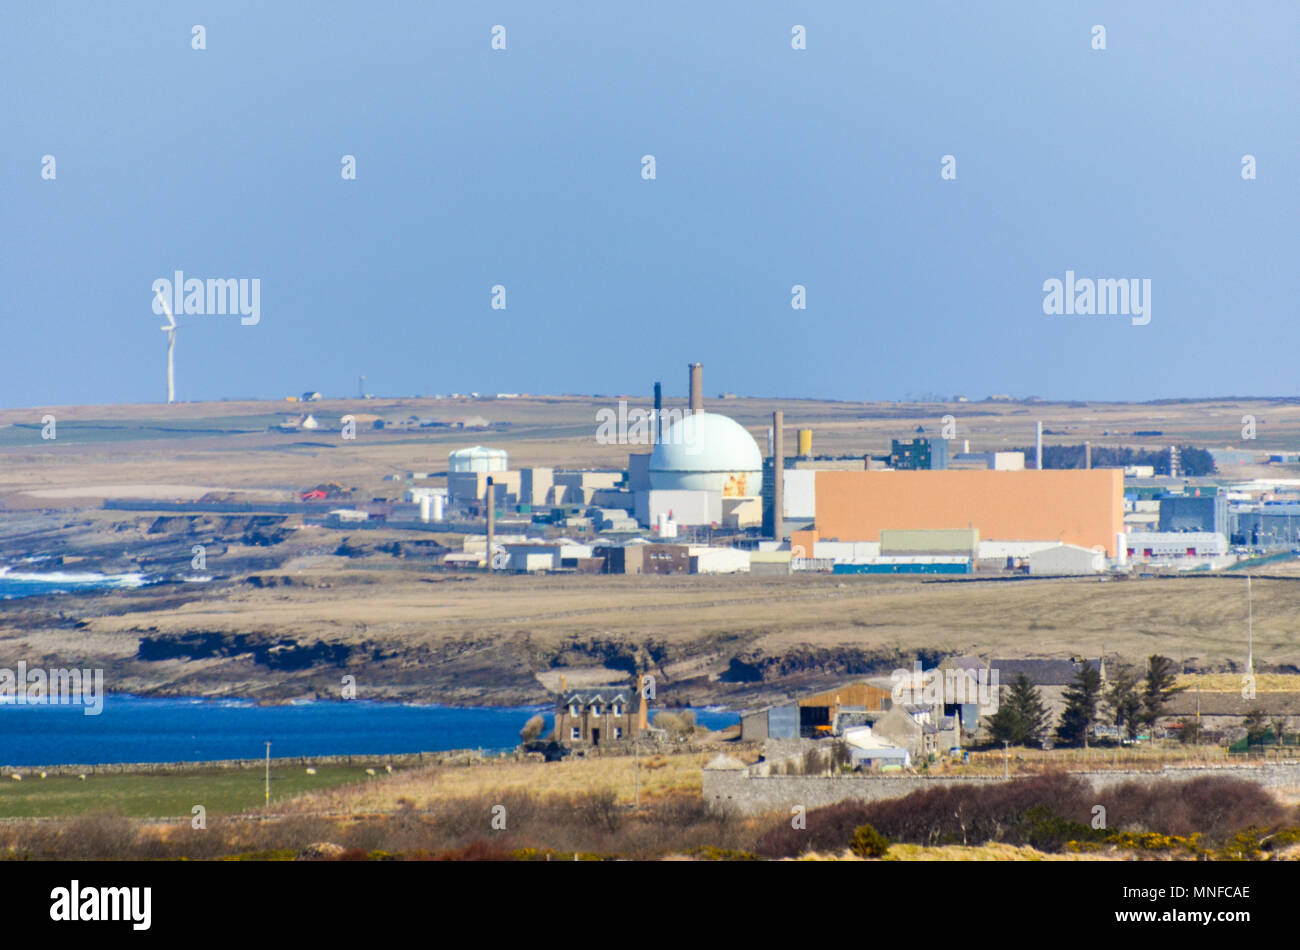 Dounreay nuclear power plant and facilities, in decommission phase, near Thurso, Scotland - Stock Image